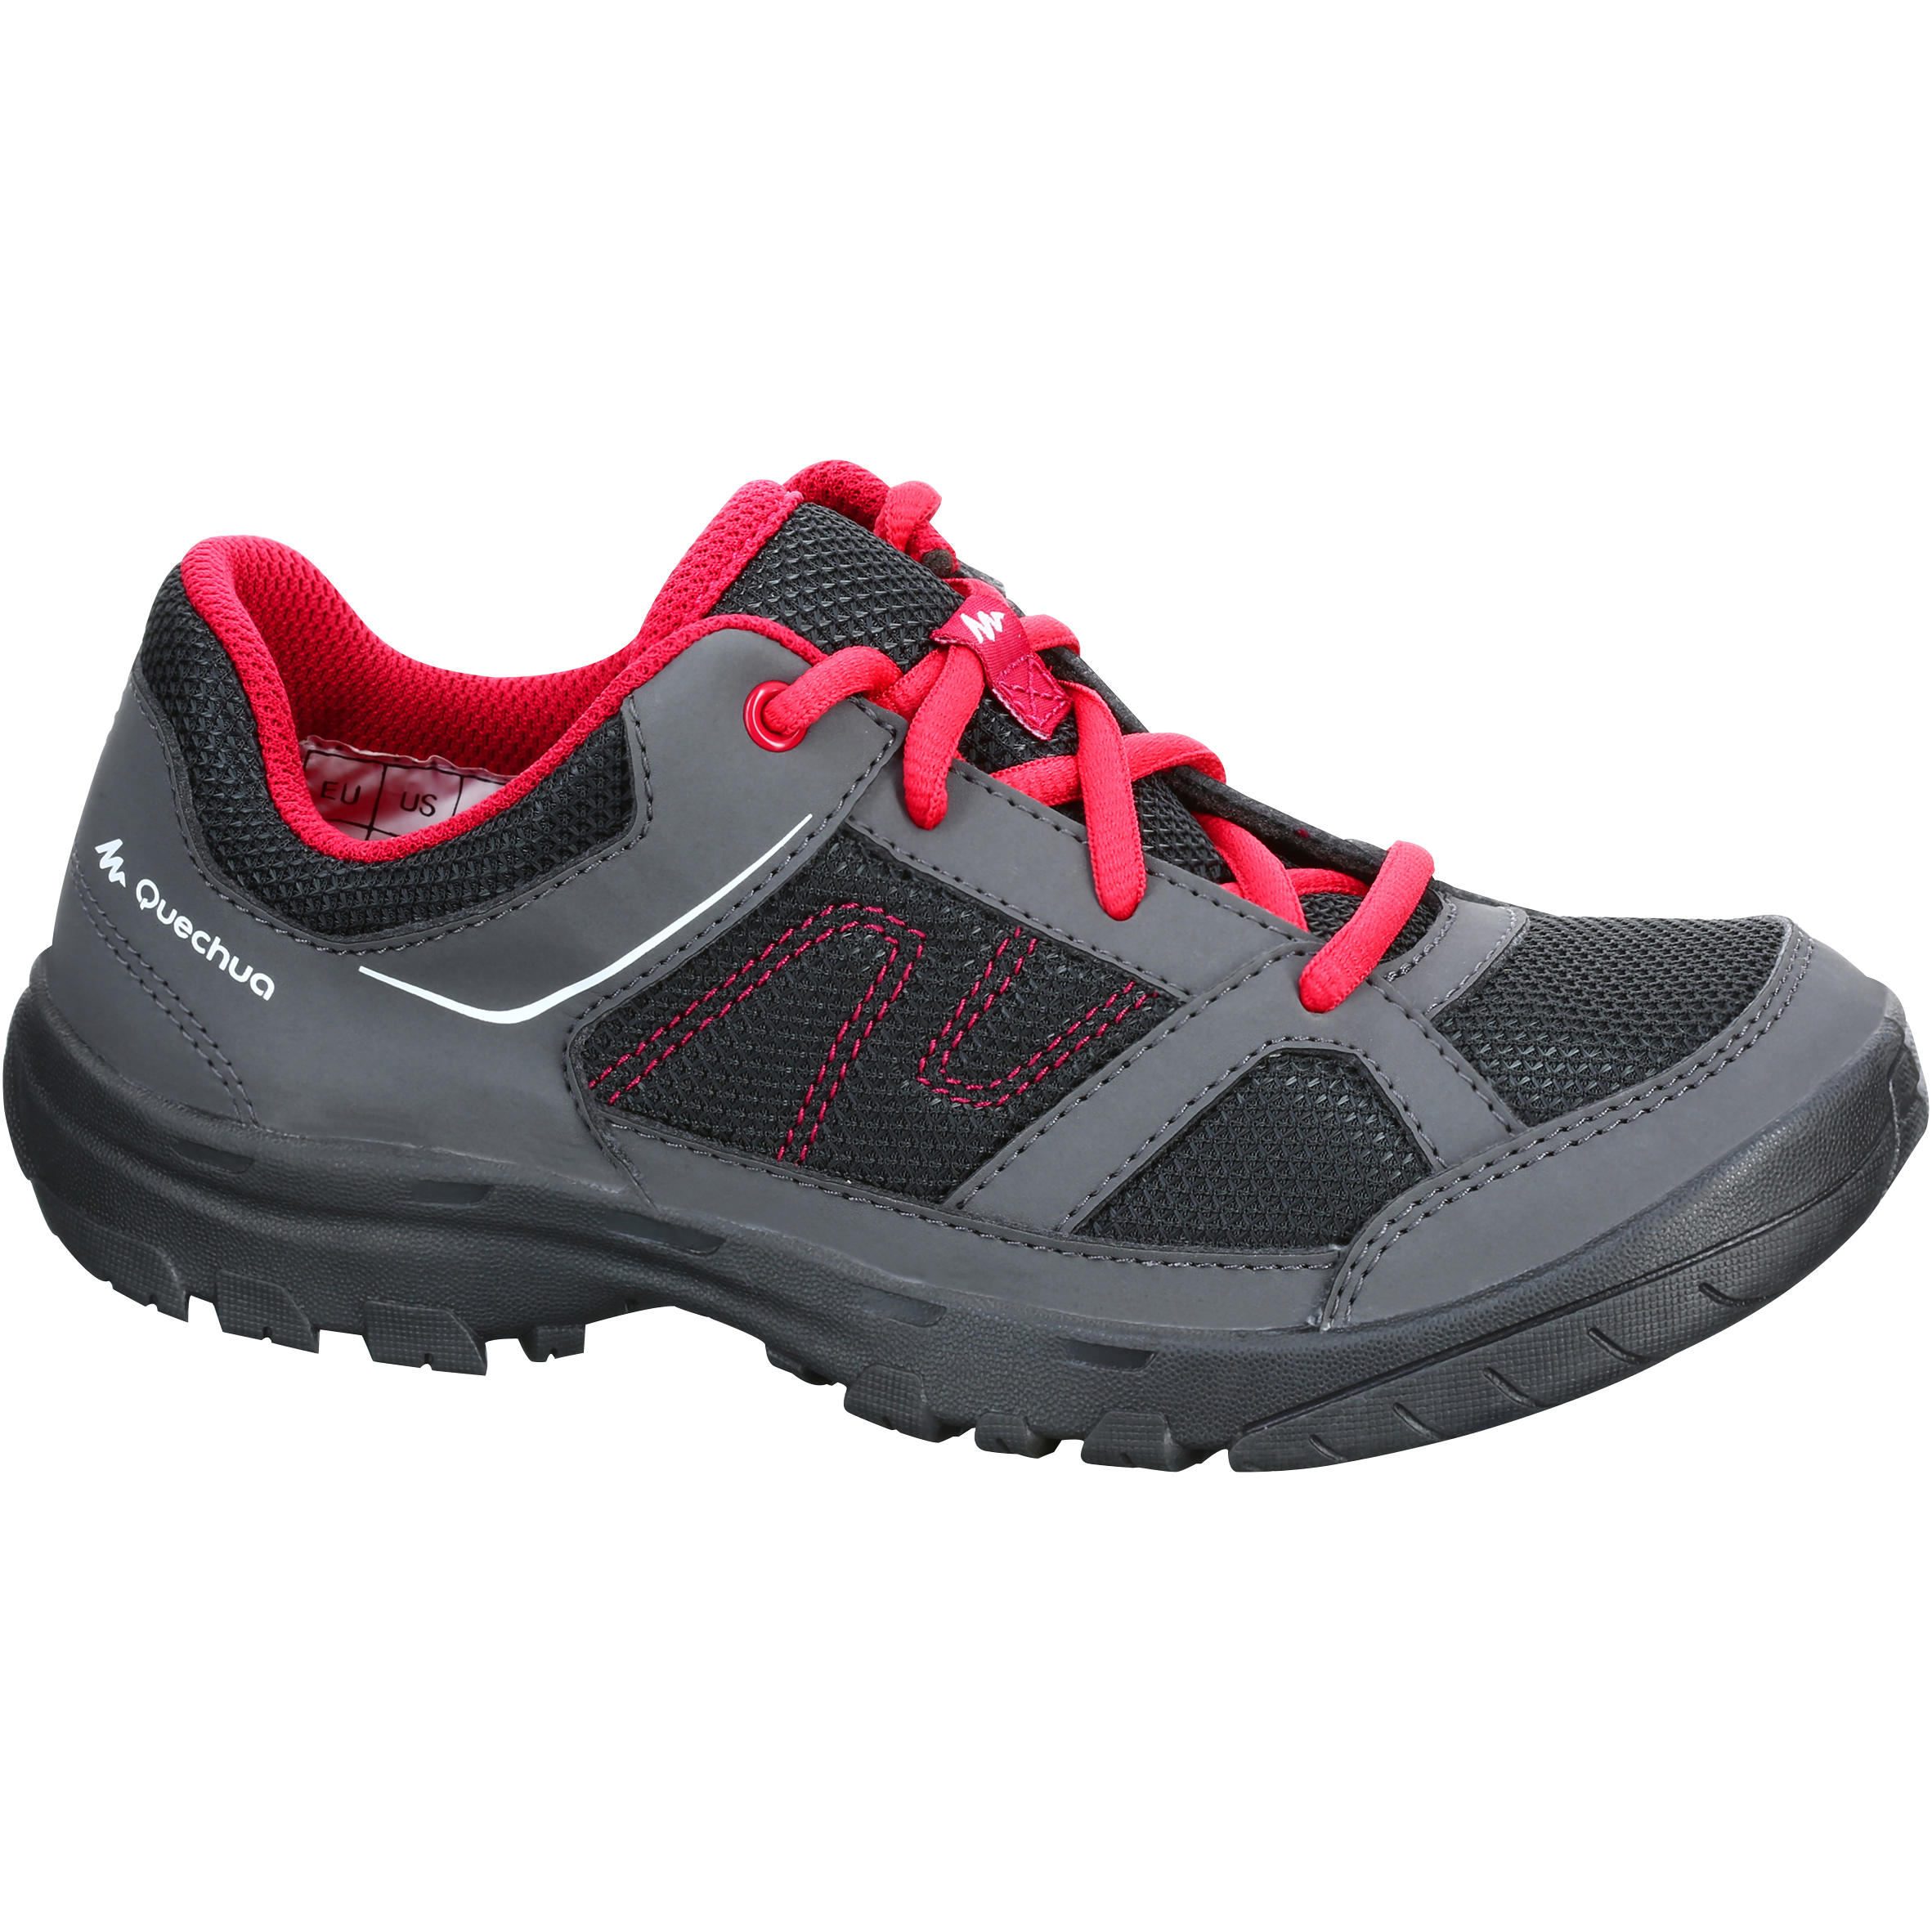 MH100 Jr Hiking Shoes baby size 5 to